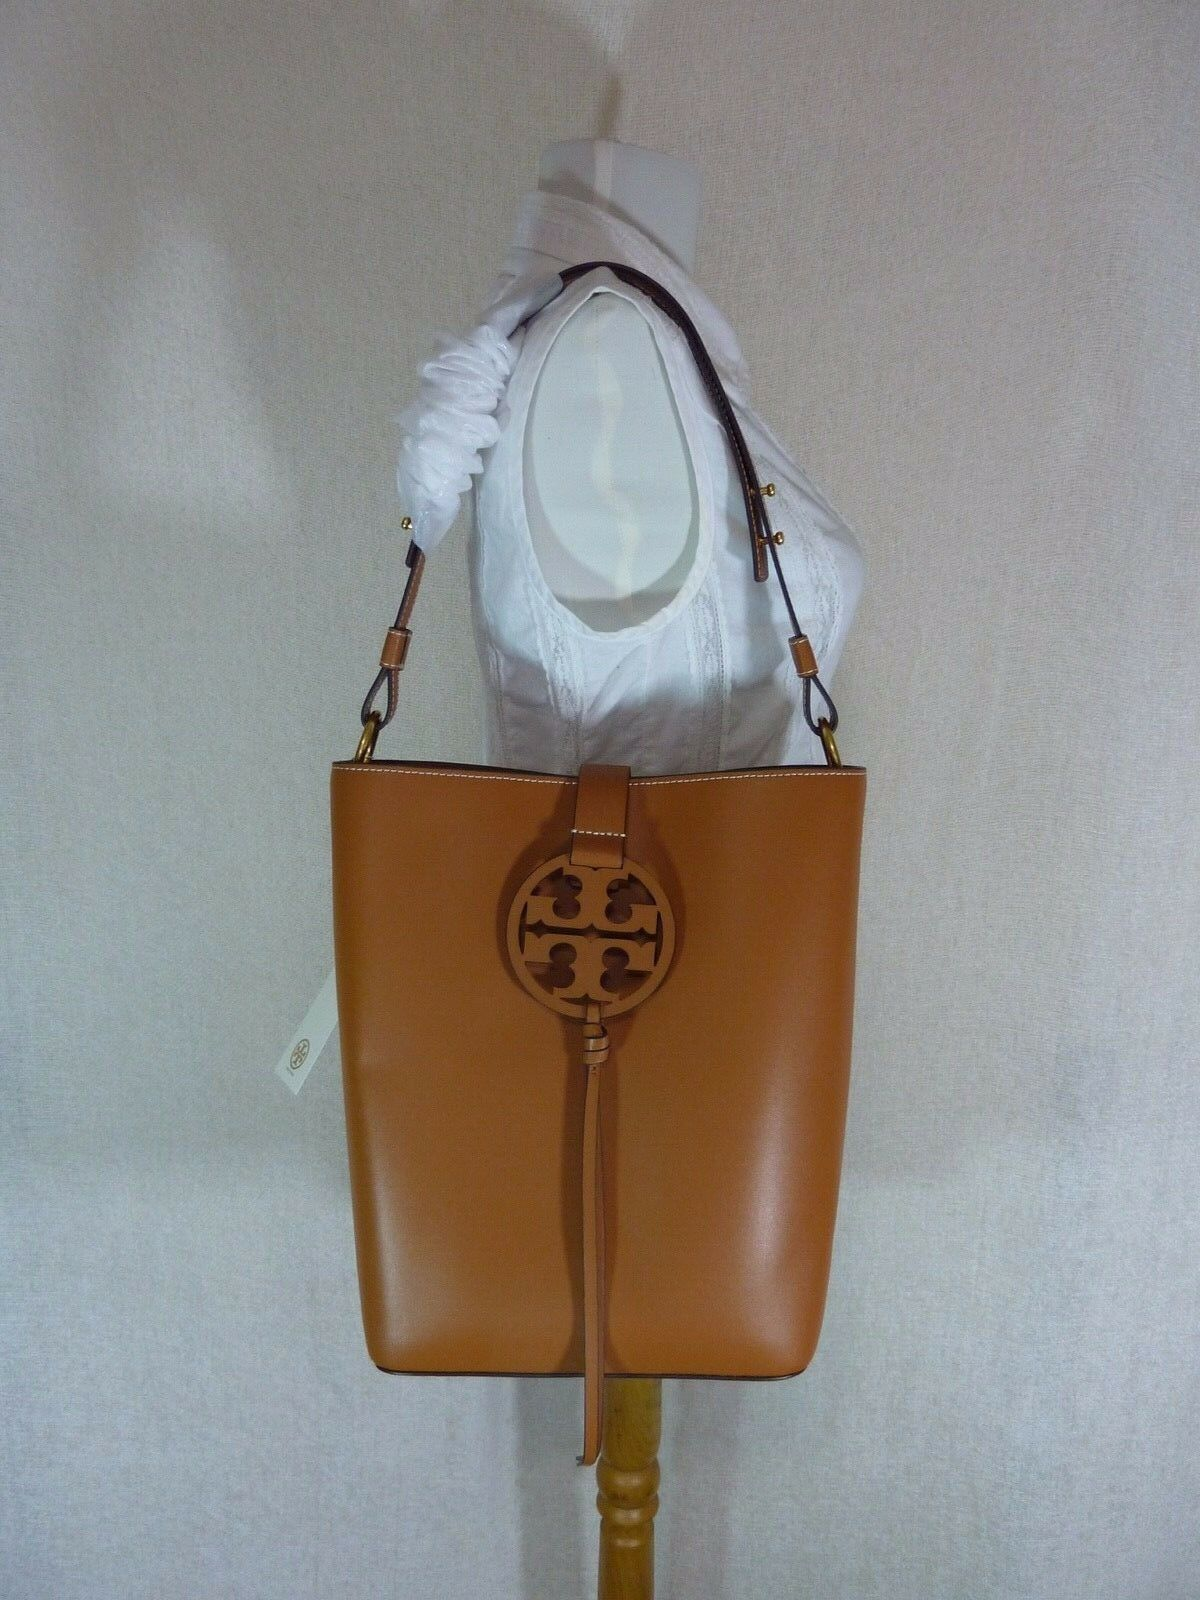 NWT Tory Burch Aged Camello Miller Hobo/Shoulder Tote - Minor Imperfection